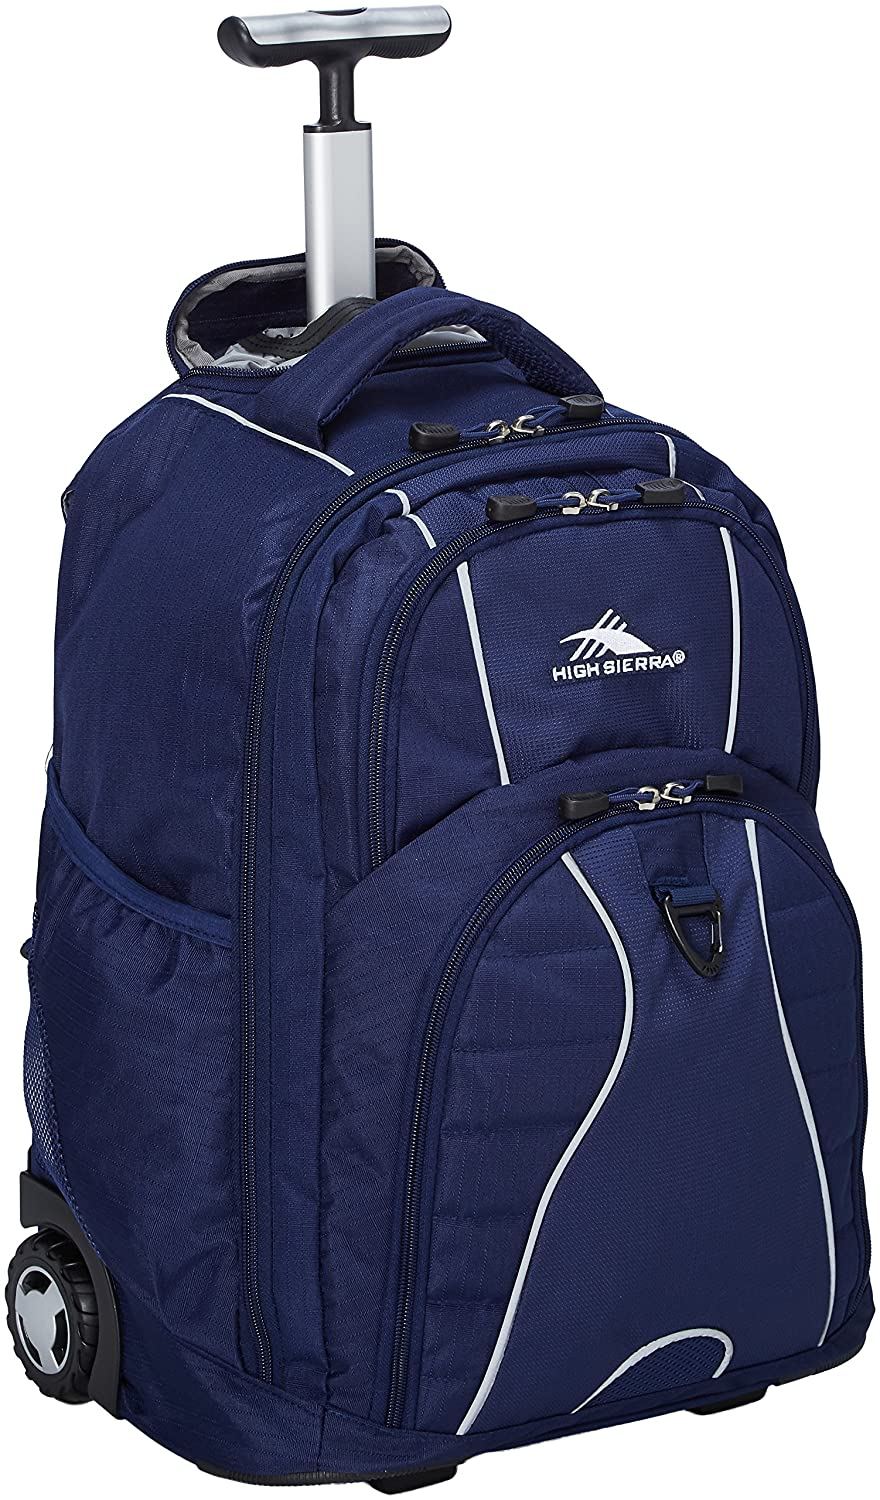 High Sierra Freewheel Wheeled Laptop Backpack